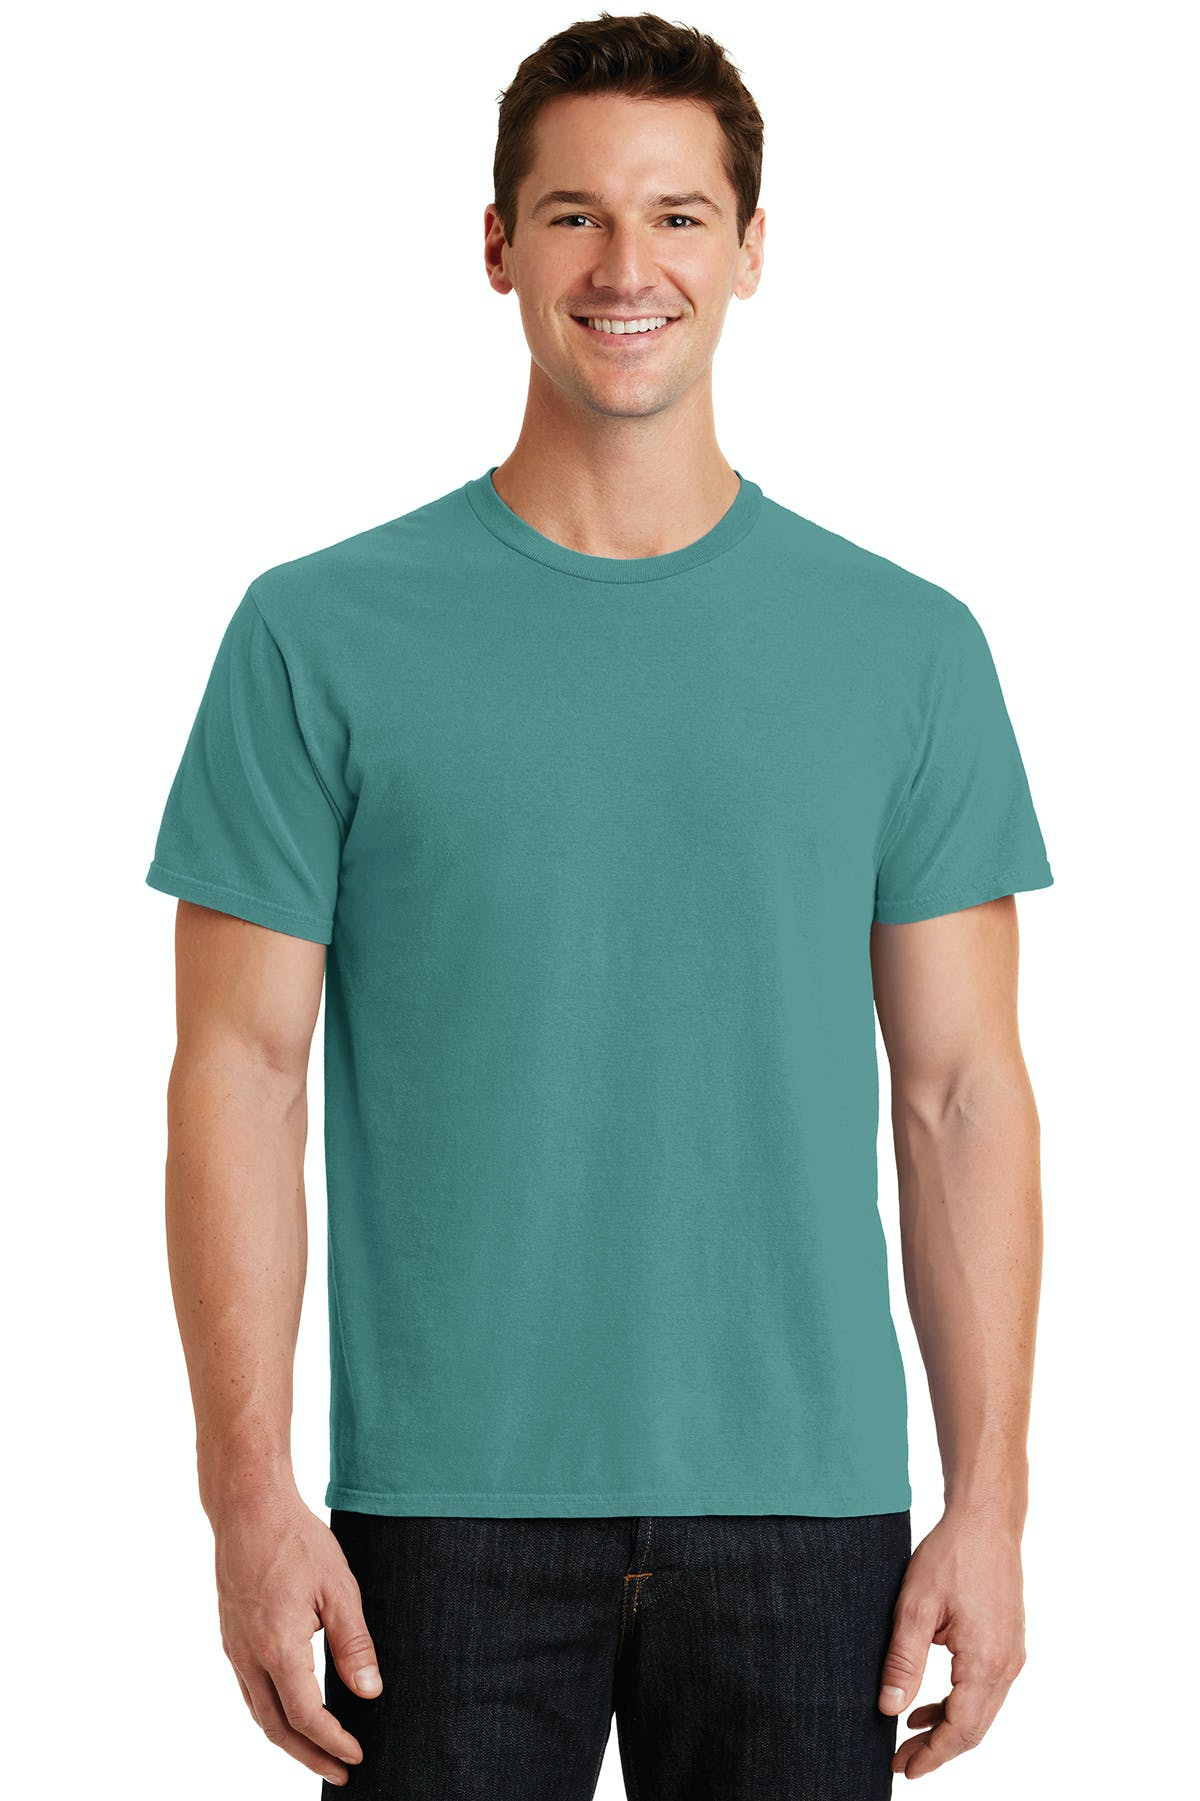 Port & Company® - Pigment-Dyed Tee - sold by PRINT CITY GRAPHICS, INC